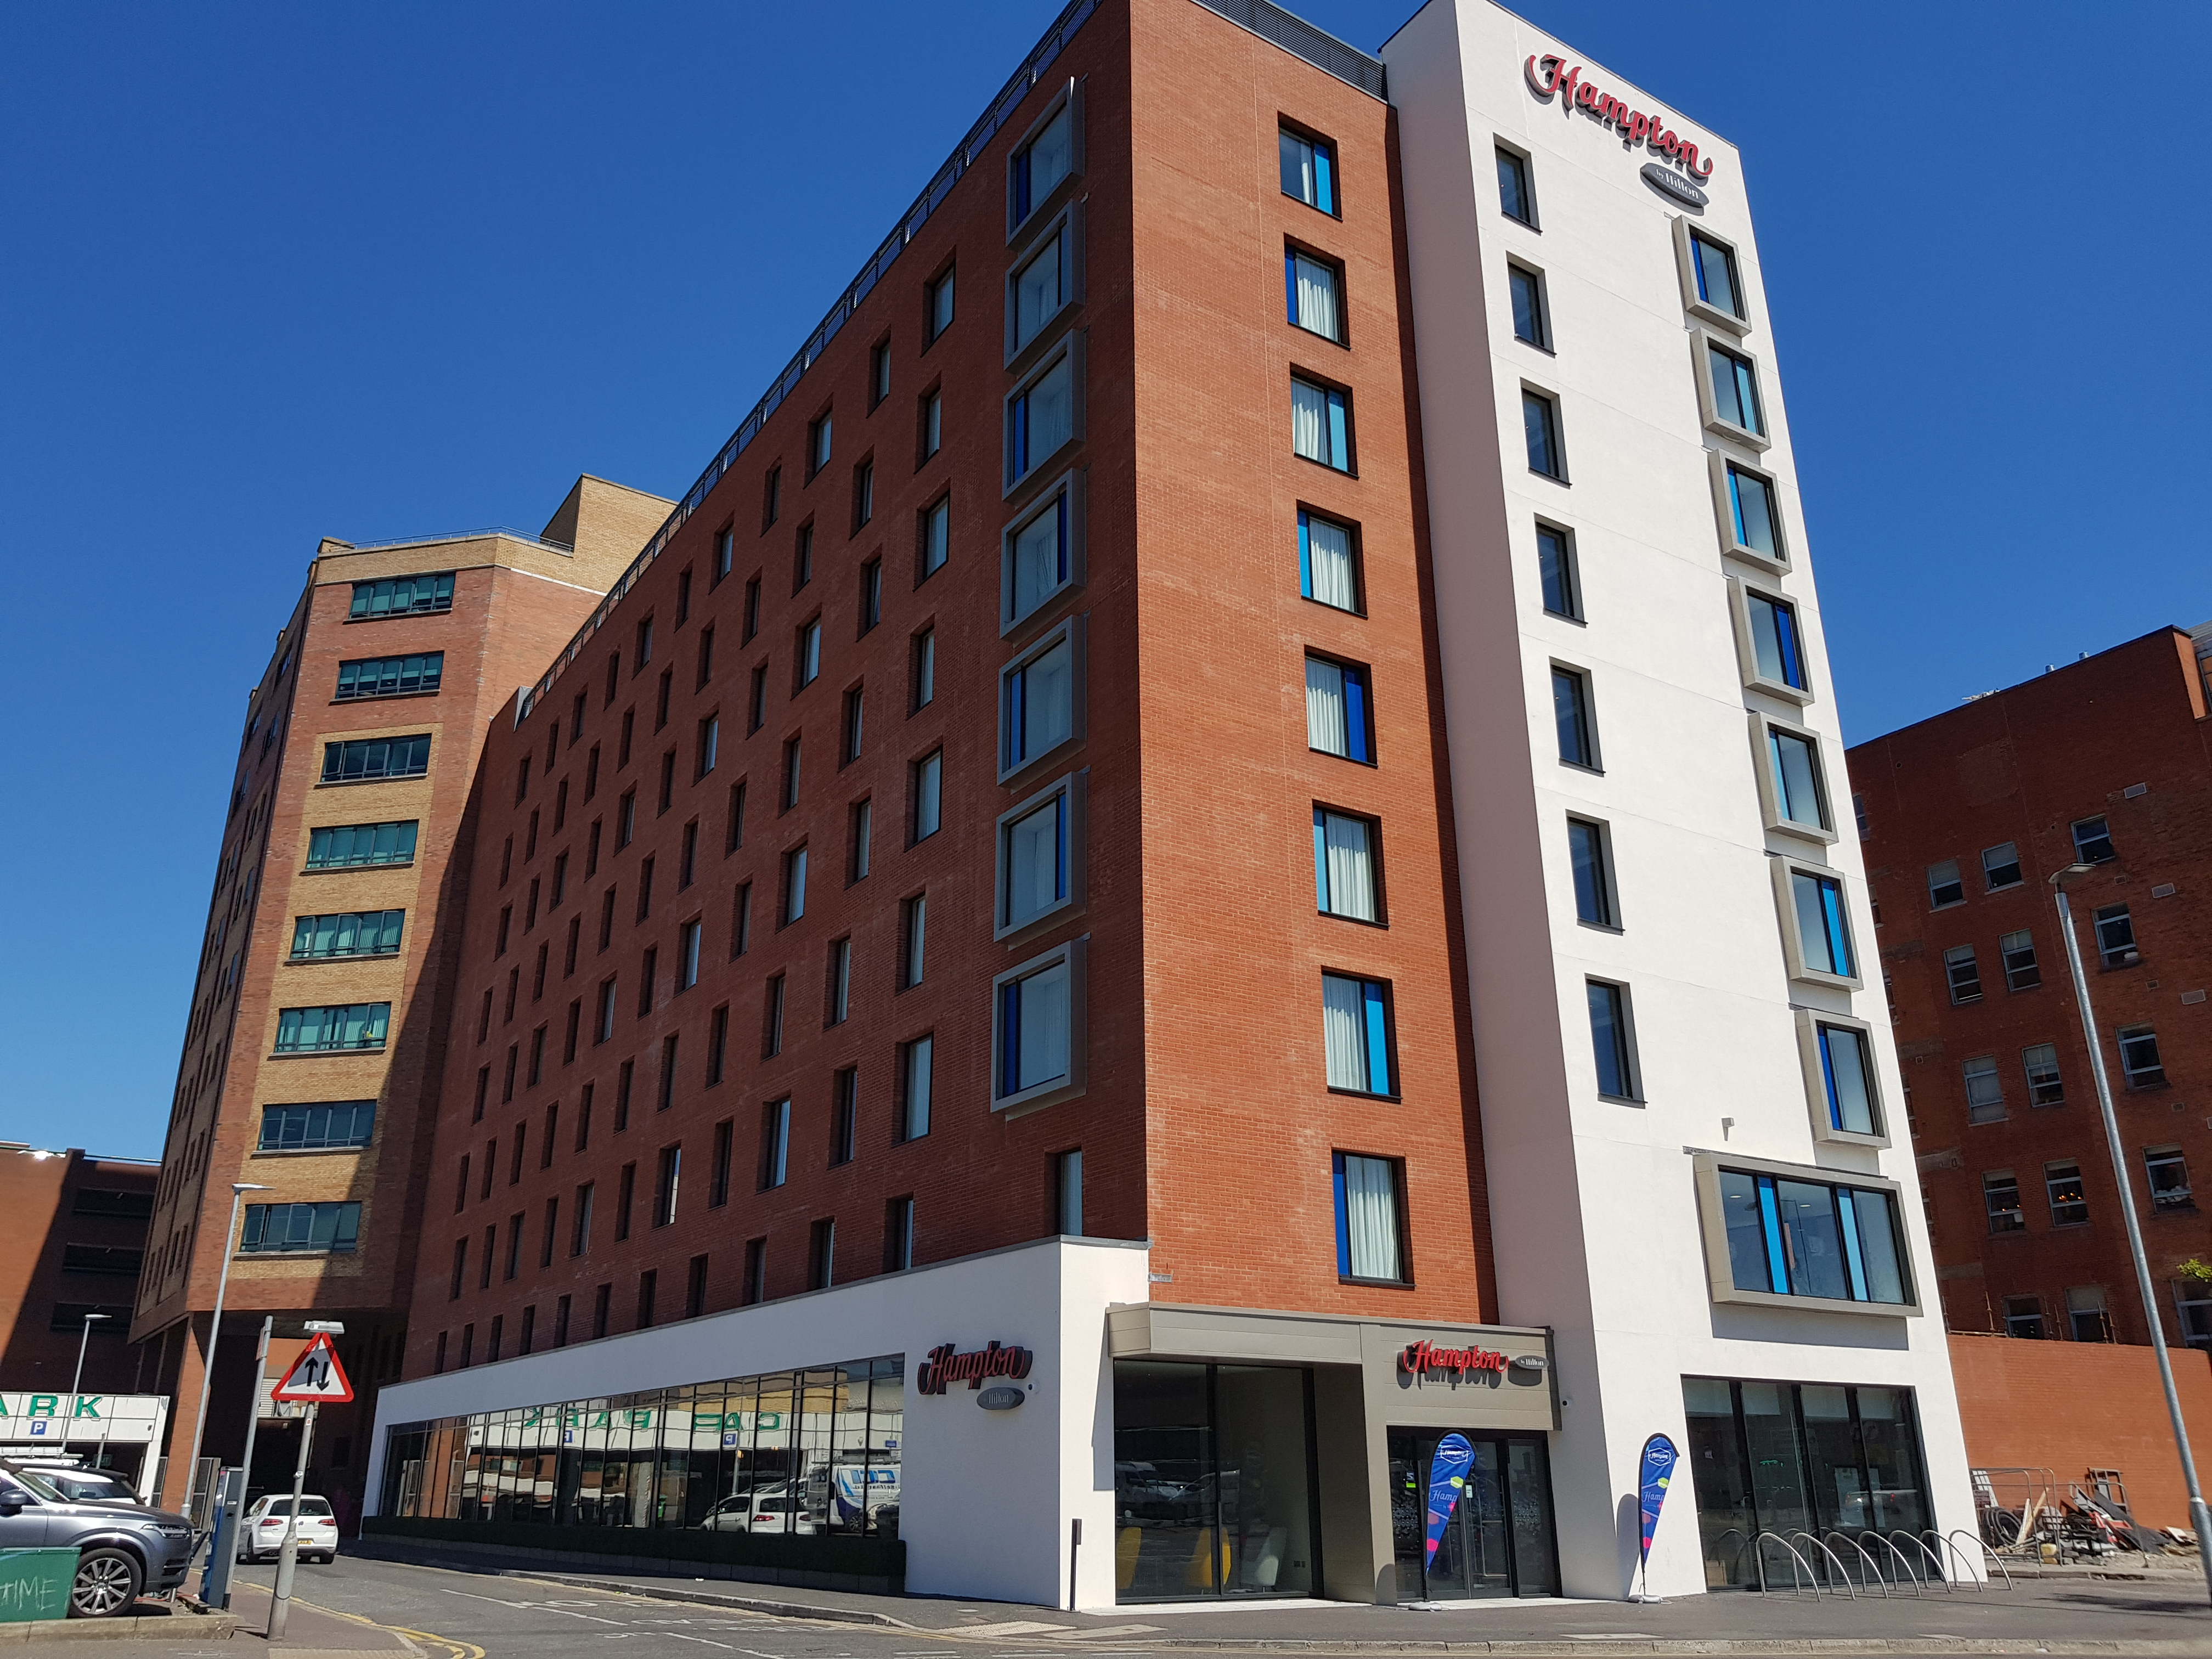 Hampton By Hilton - Belfast